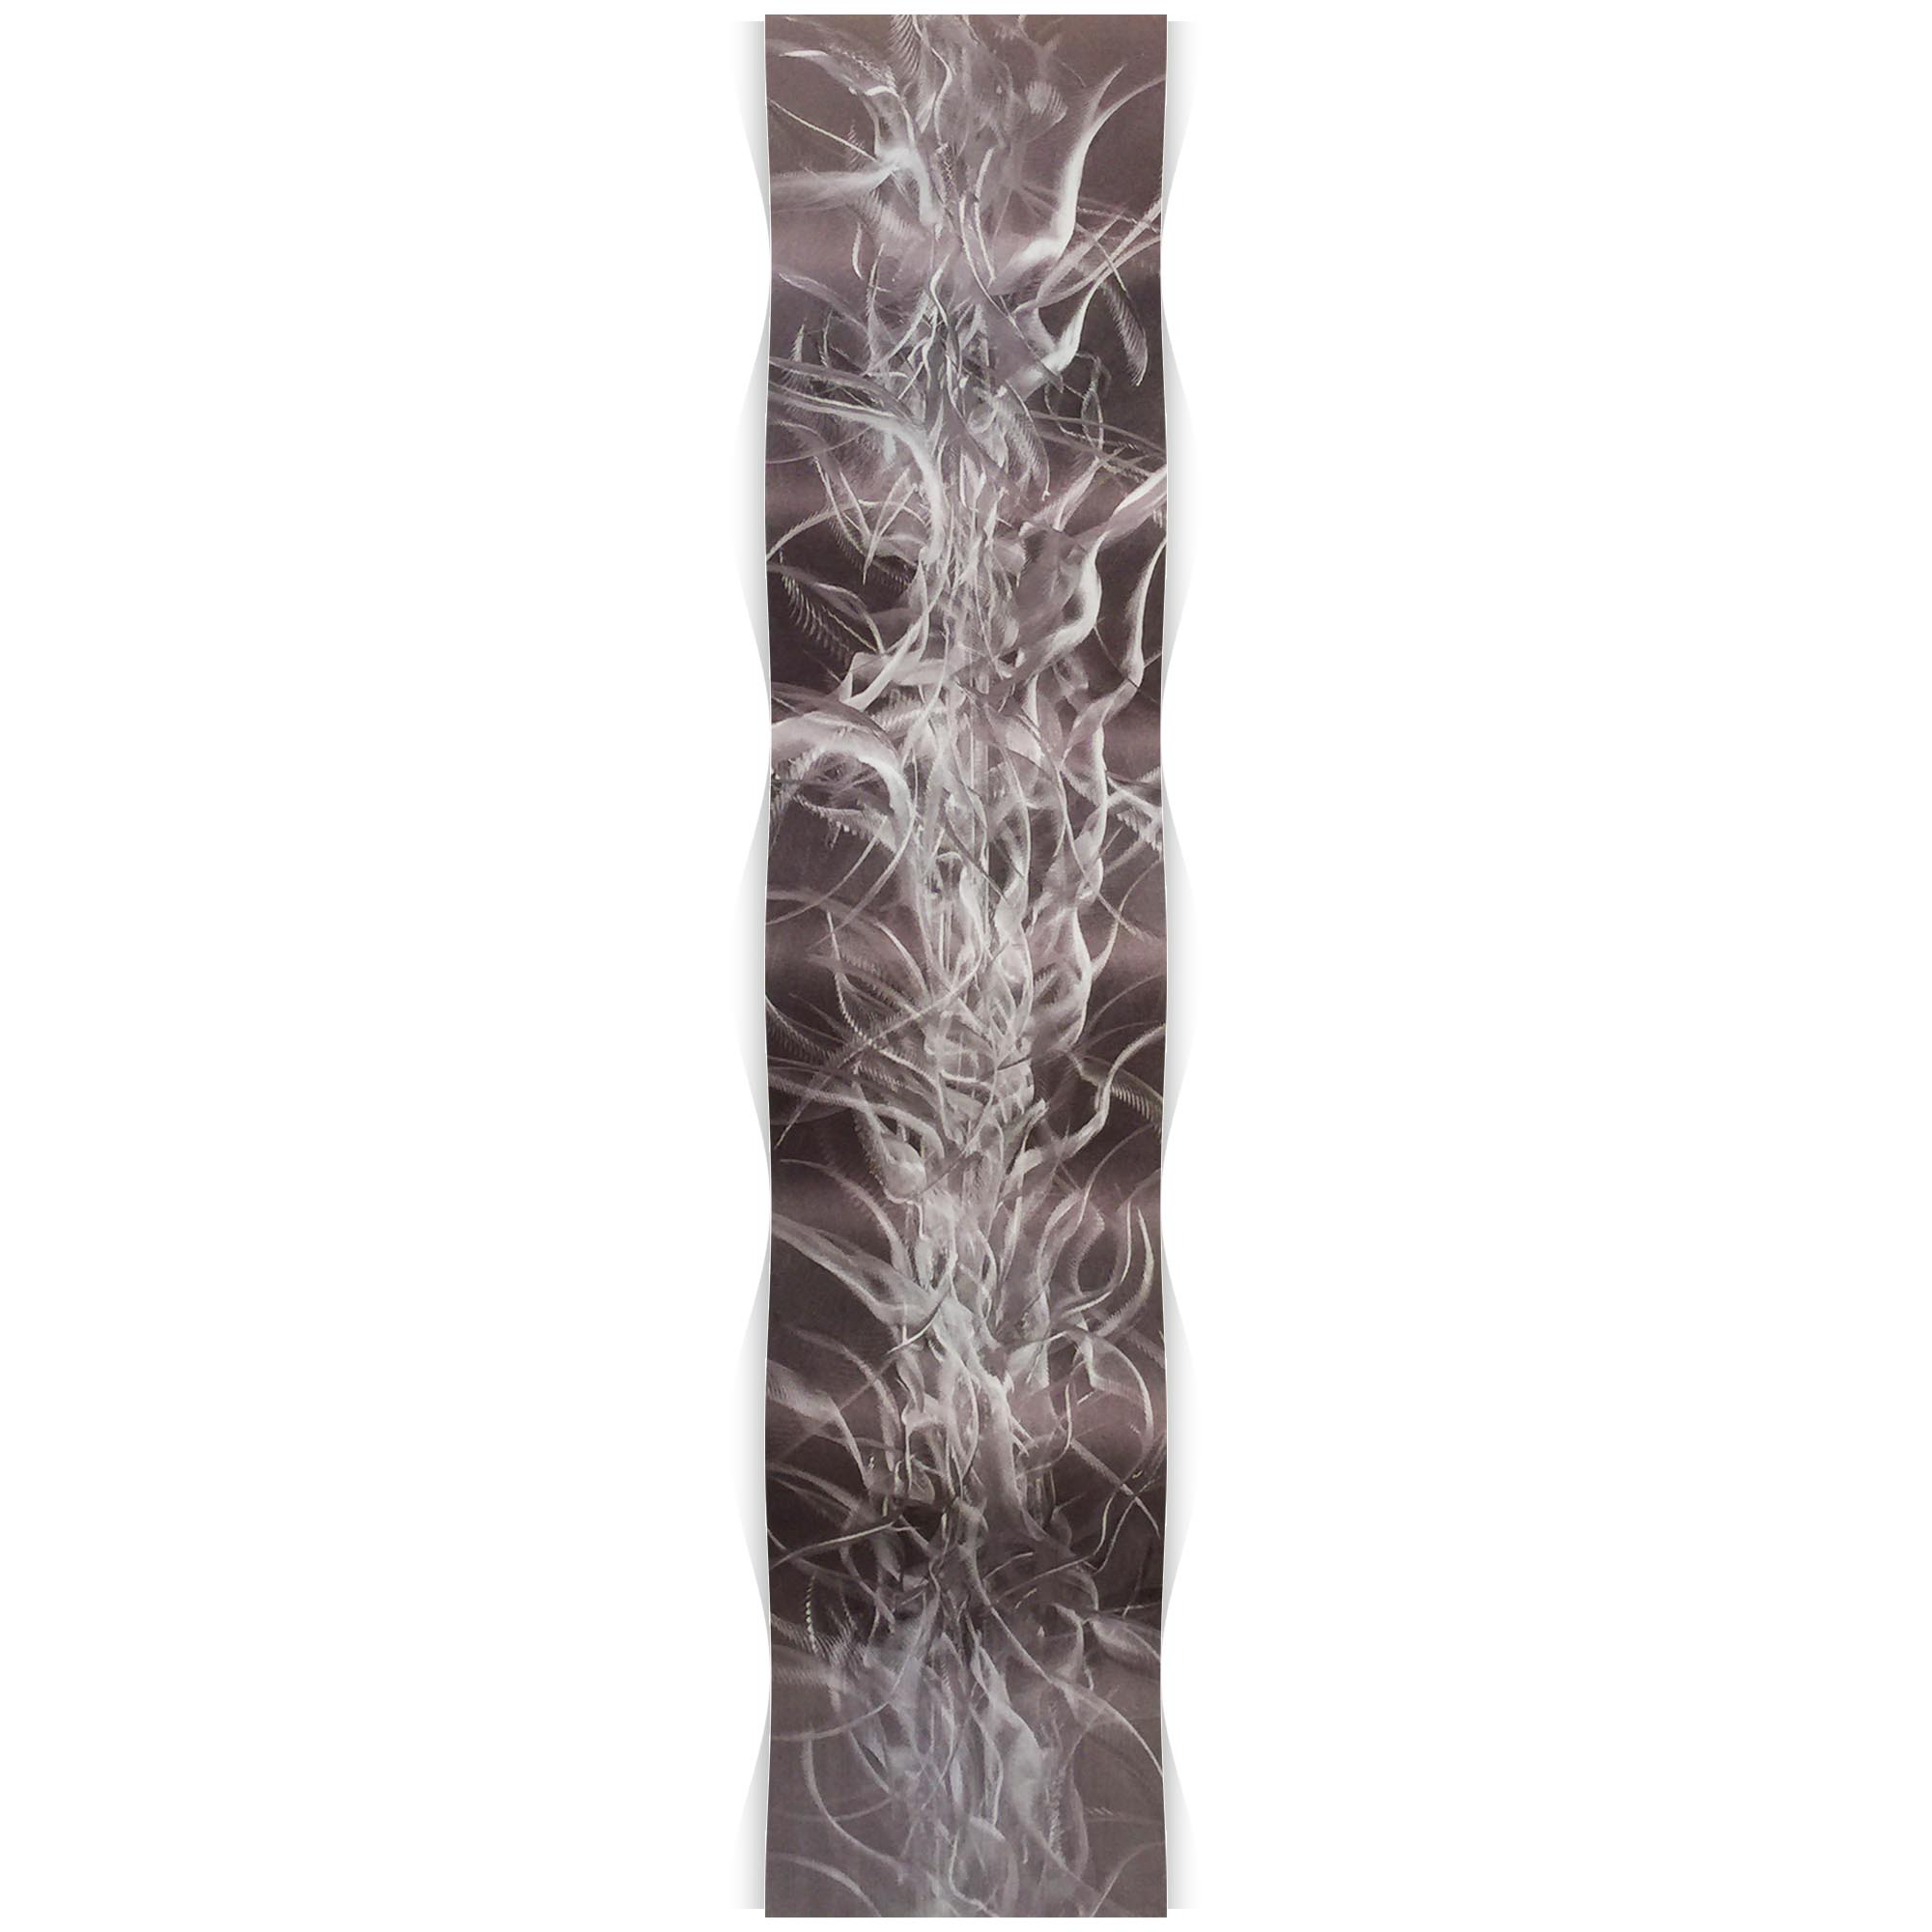 Electric Wave 9.5x44in. Metal Eclectic Decor - Image 2